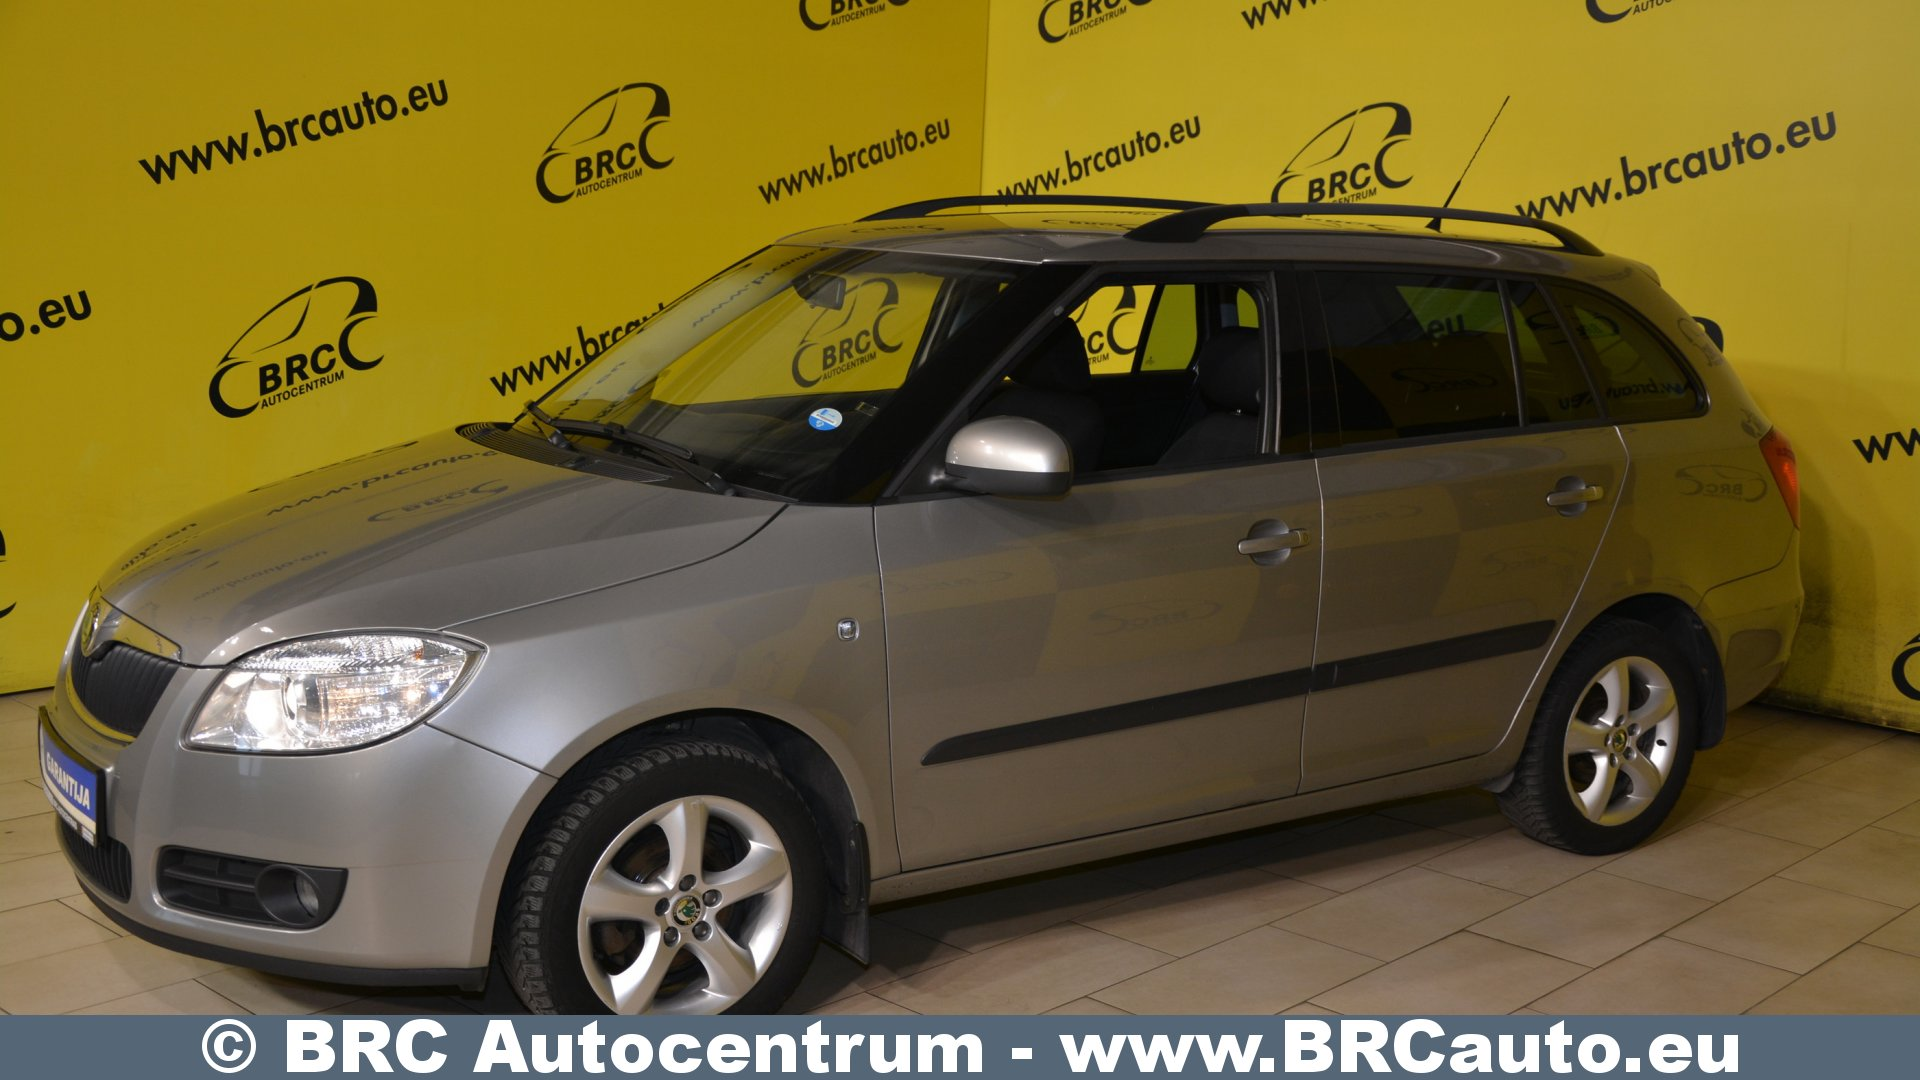 skoda fabia 1 4 16v elegance nr 289 brc autocentras. Black Bedroom Furniture Sets. Home Design Ideas